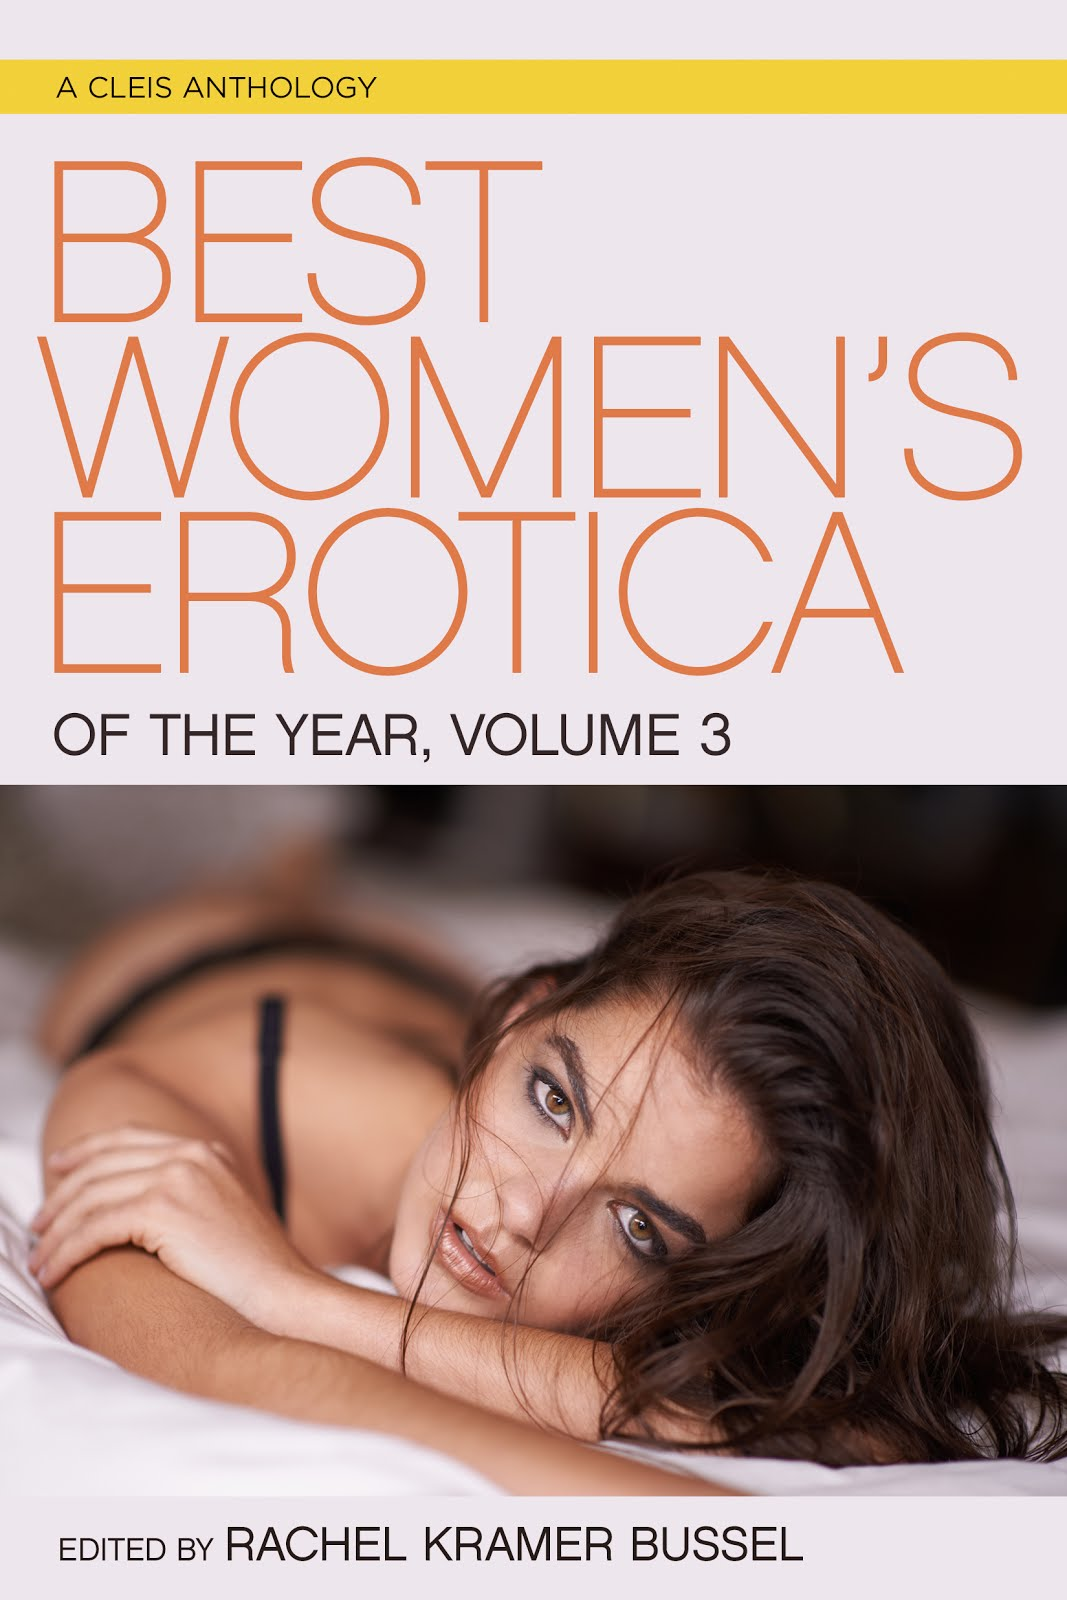 Best Women's Erotica Volume 3